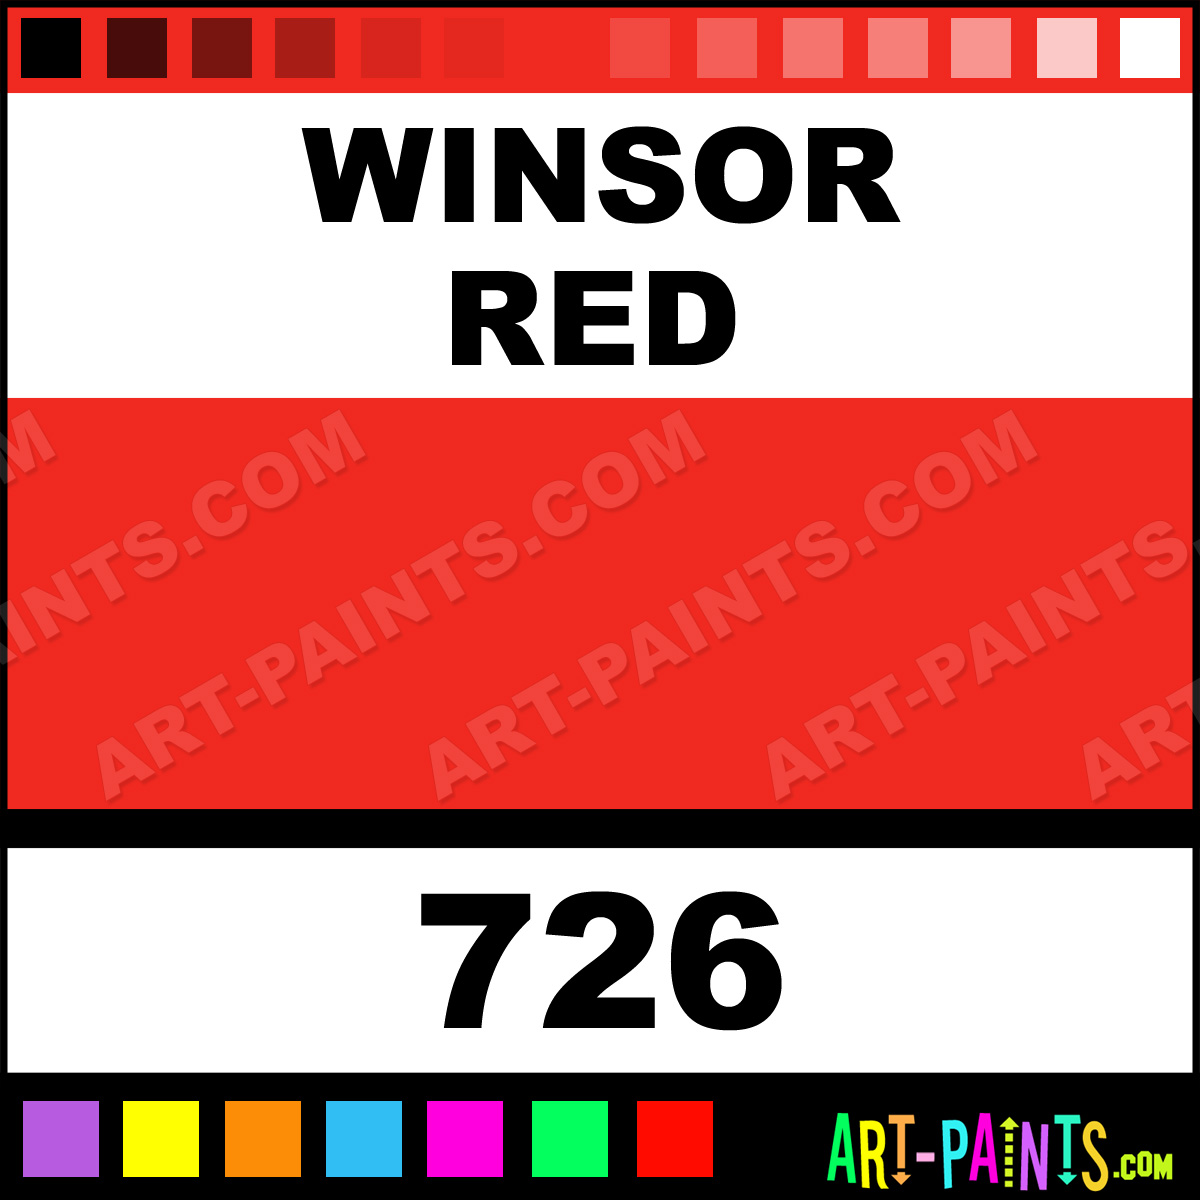 Winsor Red Designers Gouache Calligraphy Inks Pigments